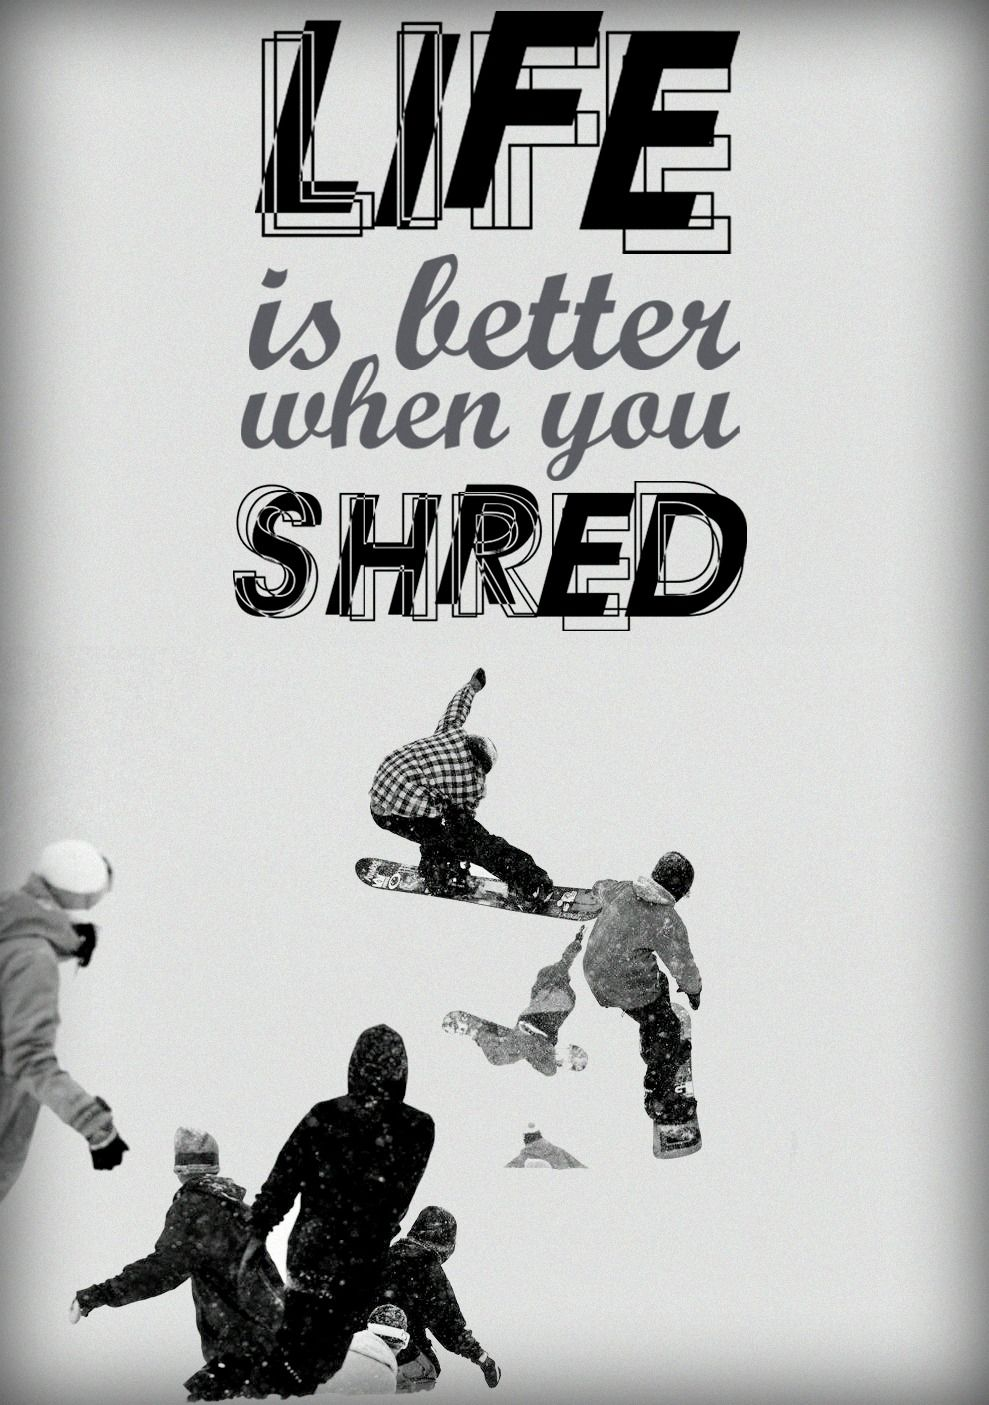 Life is better when you shred. And make booze! #madeintahoe #snowflakevodka #snowboarding